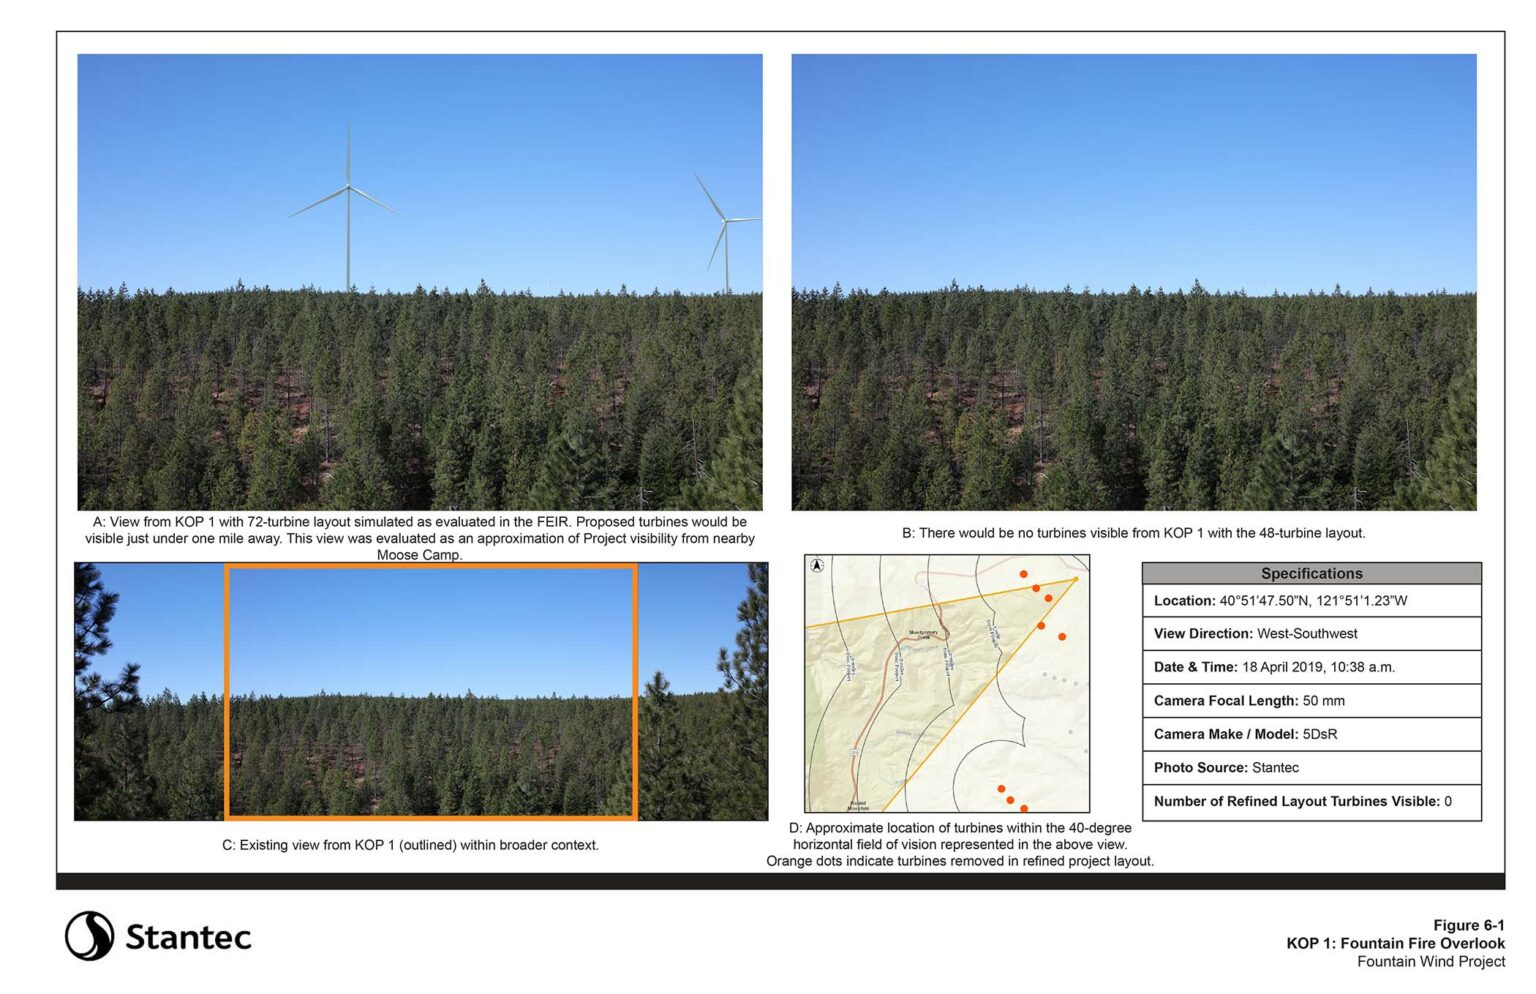 Fountain Fire Overlook (Moose Camp Road, South of SR299) - OVERVIEW